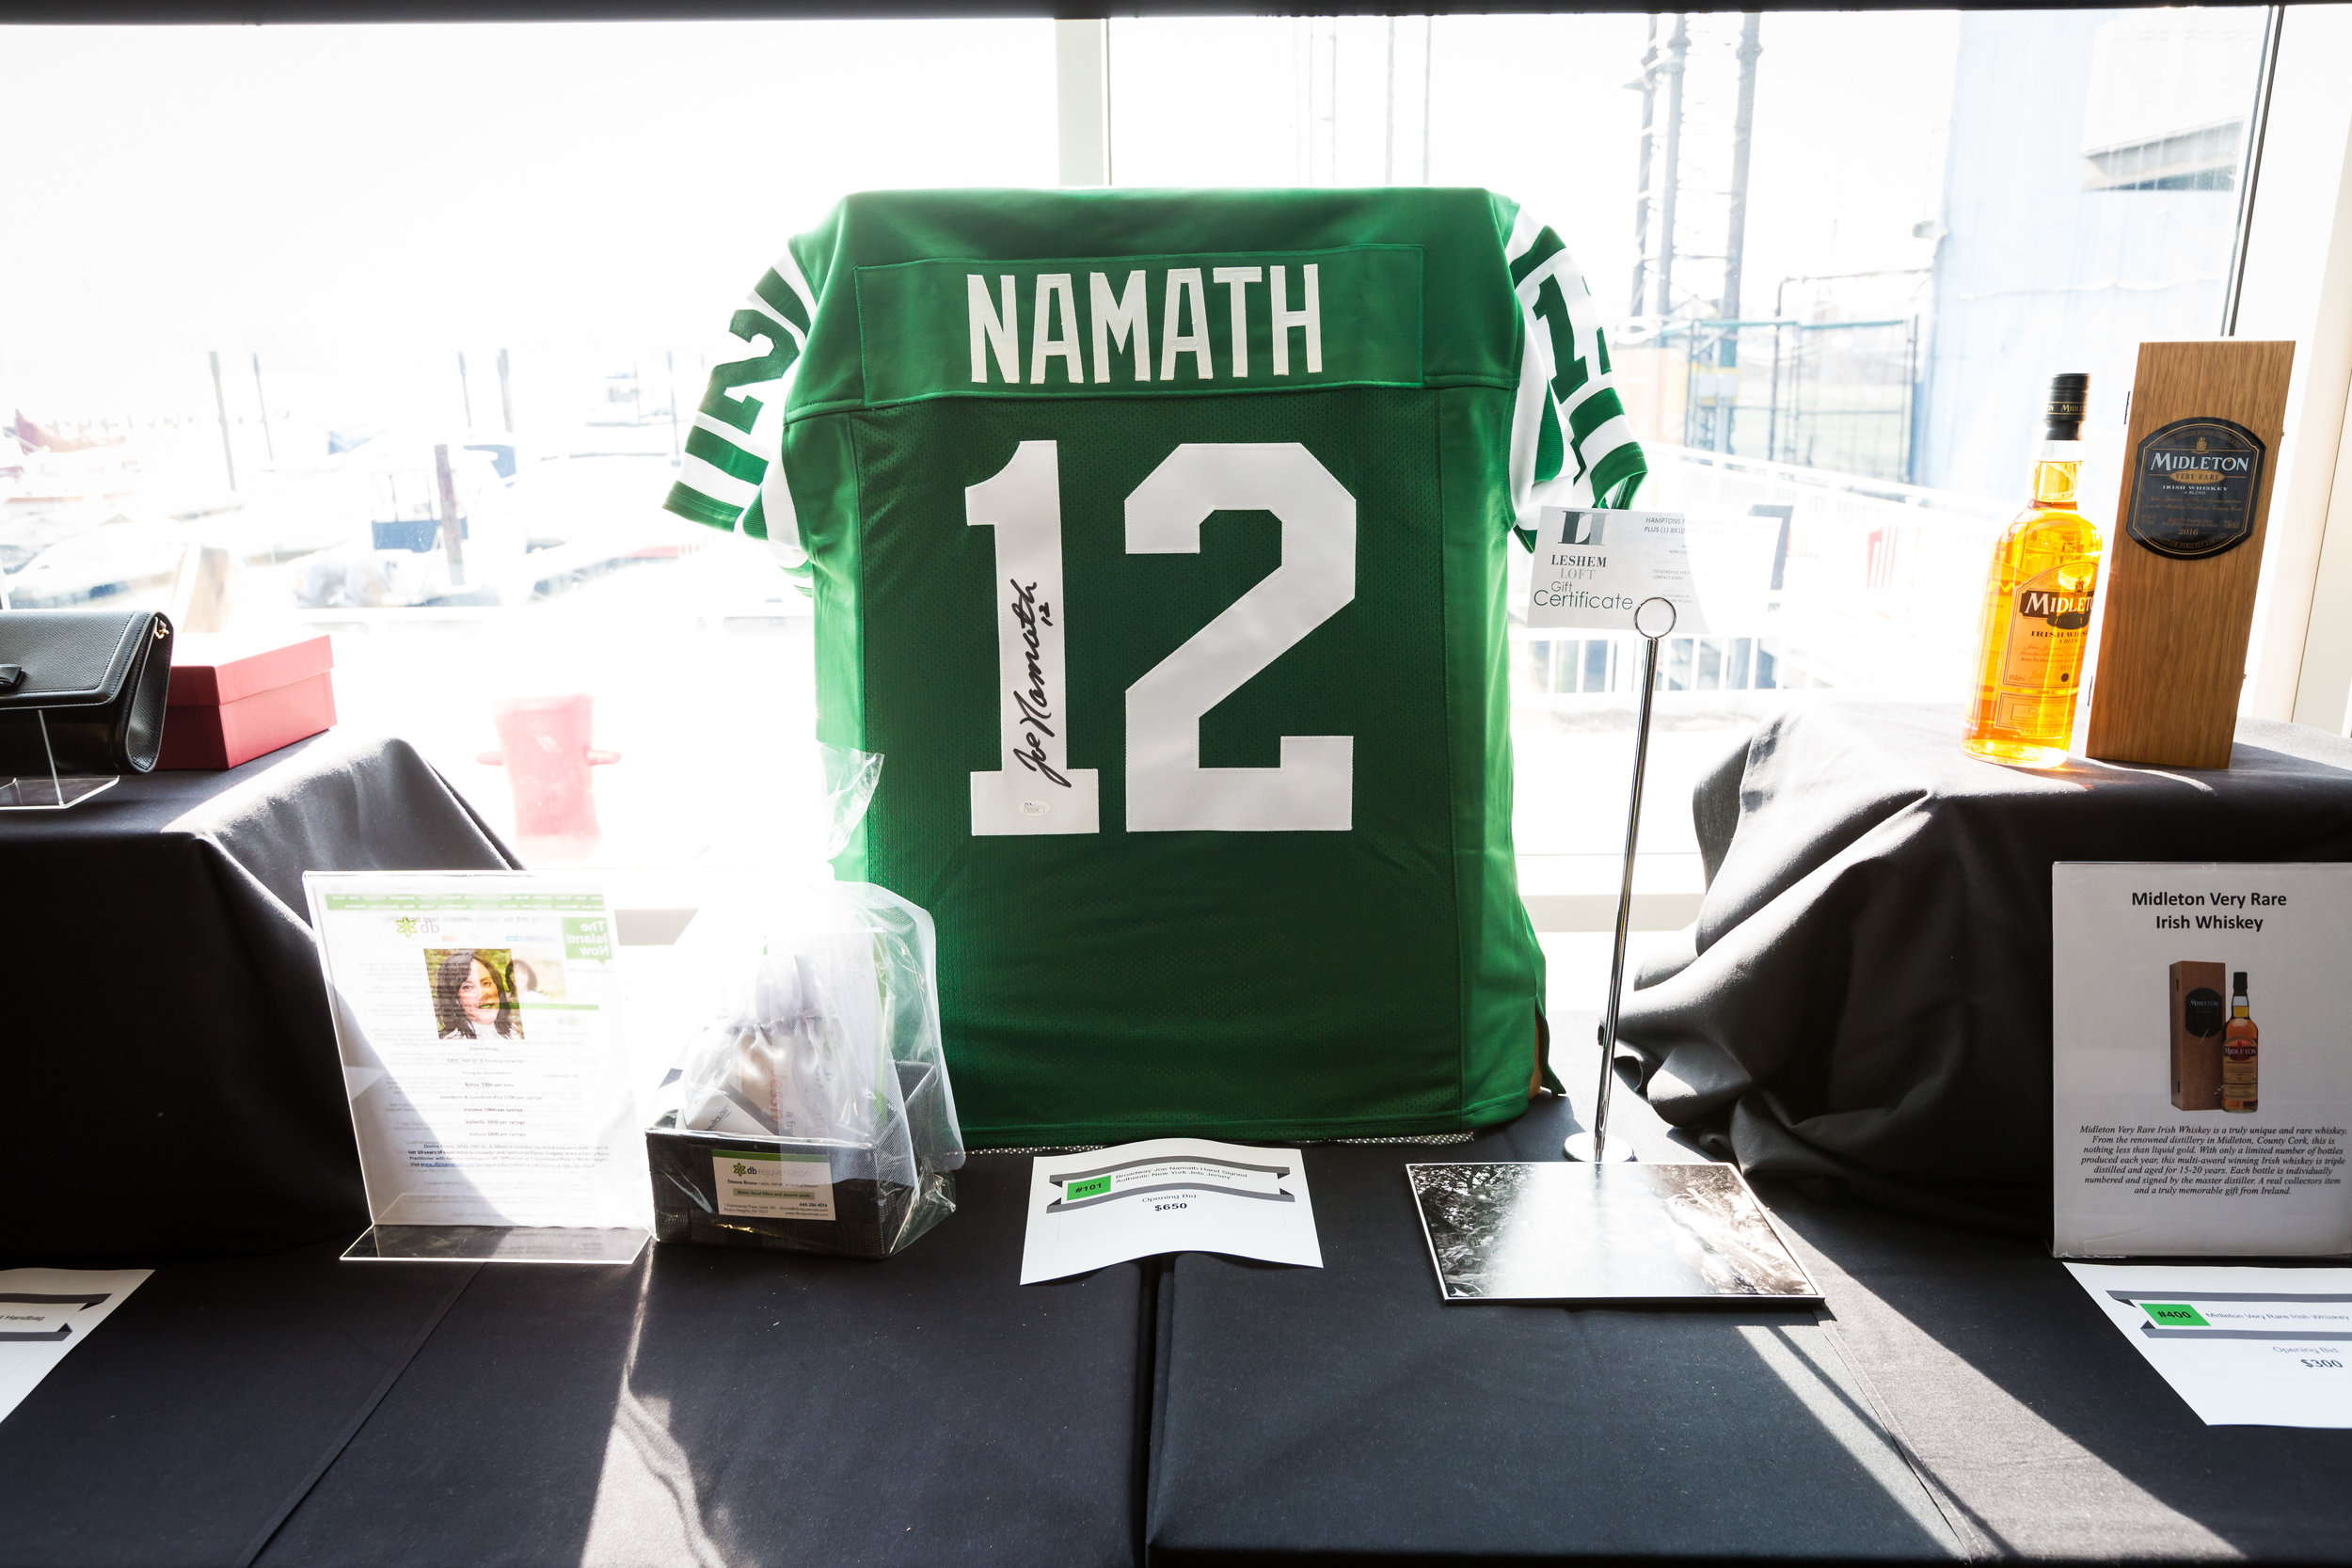 Auction Items: Autographed Joe Namath Jersey, Leshem Loft Gift Certificate, Midleton Whiskey